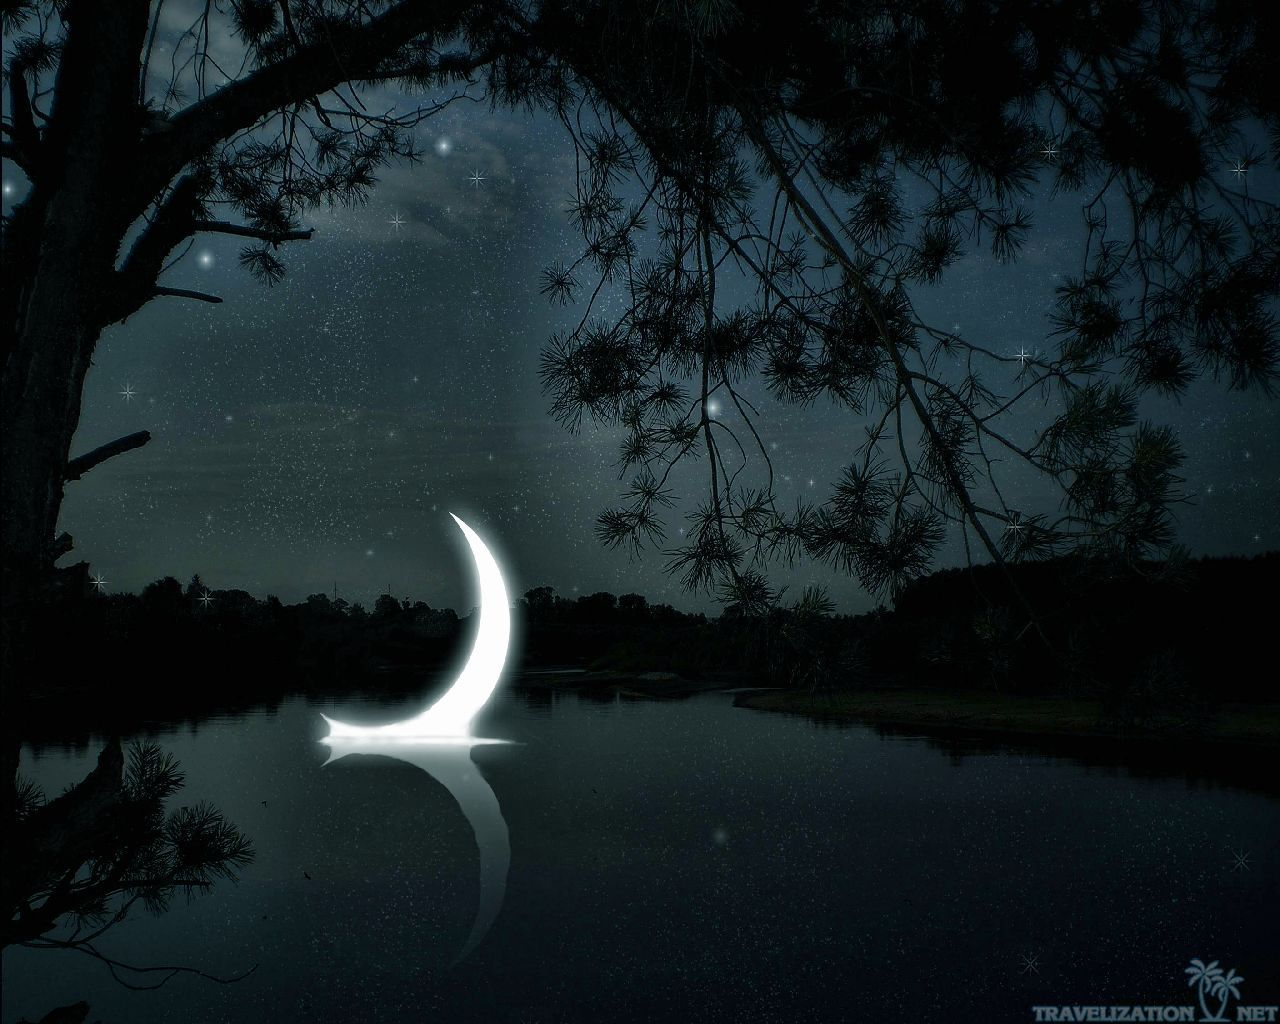 Crescent Moon Wallpaper 3853 Hd Wallpapers In Space Imagescicom 1280x1024